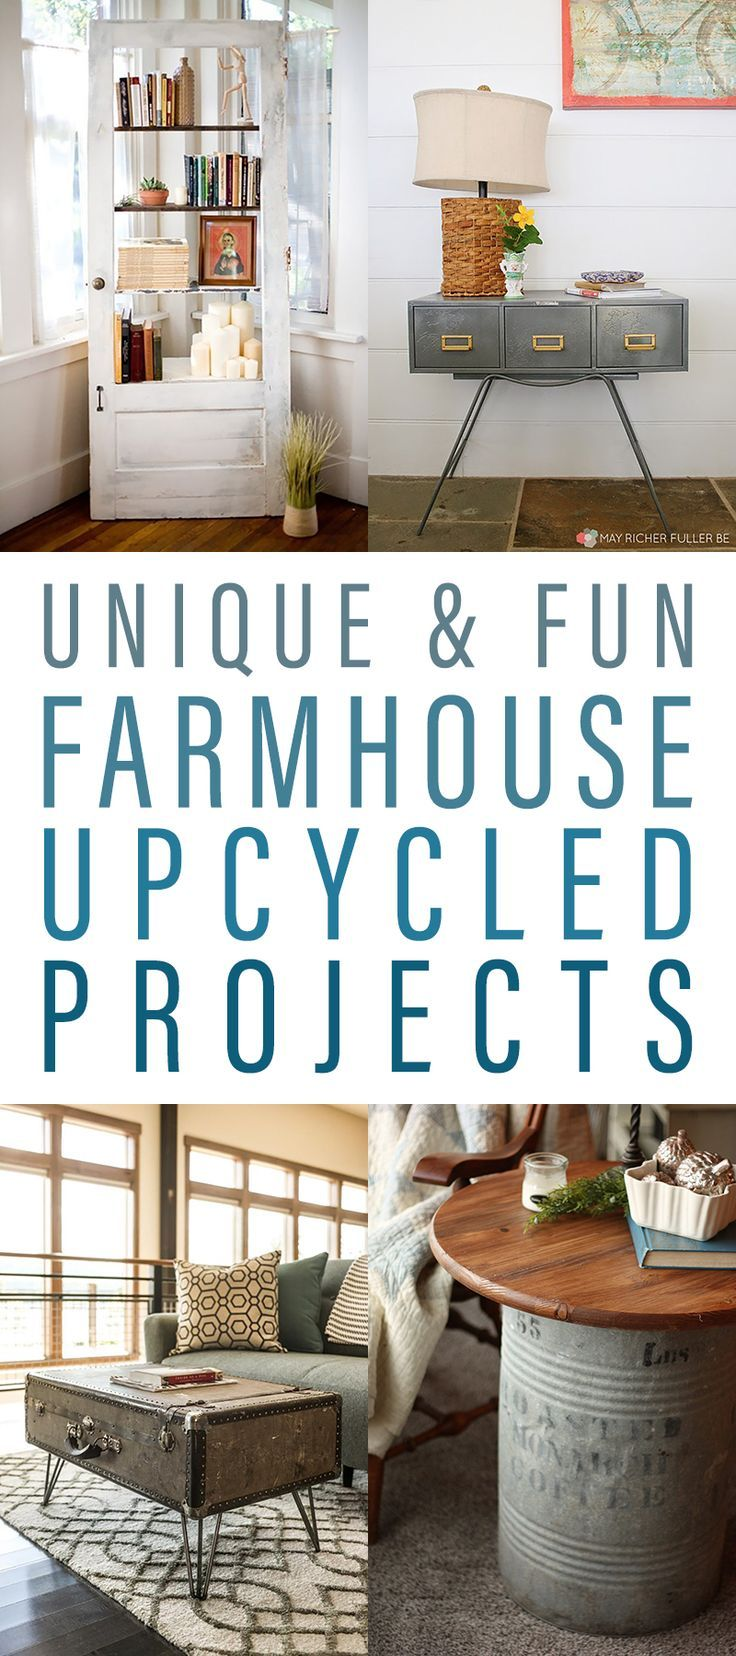 Unique and Fun Farmhouse Upcycled Projects.  Come and see how upcycling brings fresh new life into items!  All of these projects are inspiring and would look amazing in your Farmhouse Home!  #FarmhouseDIY #DIYFarmhouseHomeDecorAccessories #upcycling #Upcycle #FarmhouseUpcycling #farmhouse  #FarmhouseUpcycingProjects #DIYFarmhouseProjects #UpcycledCardCatalog #UpcycledVintageDoor #UpcycledDoor #UpcycledDrawer